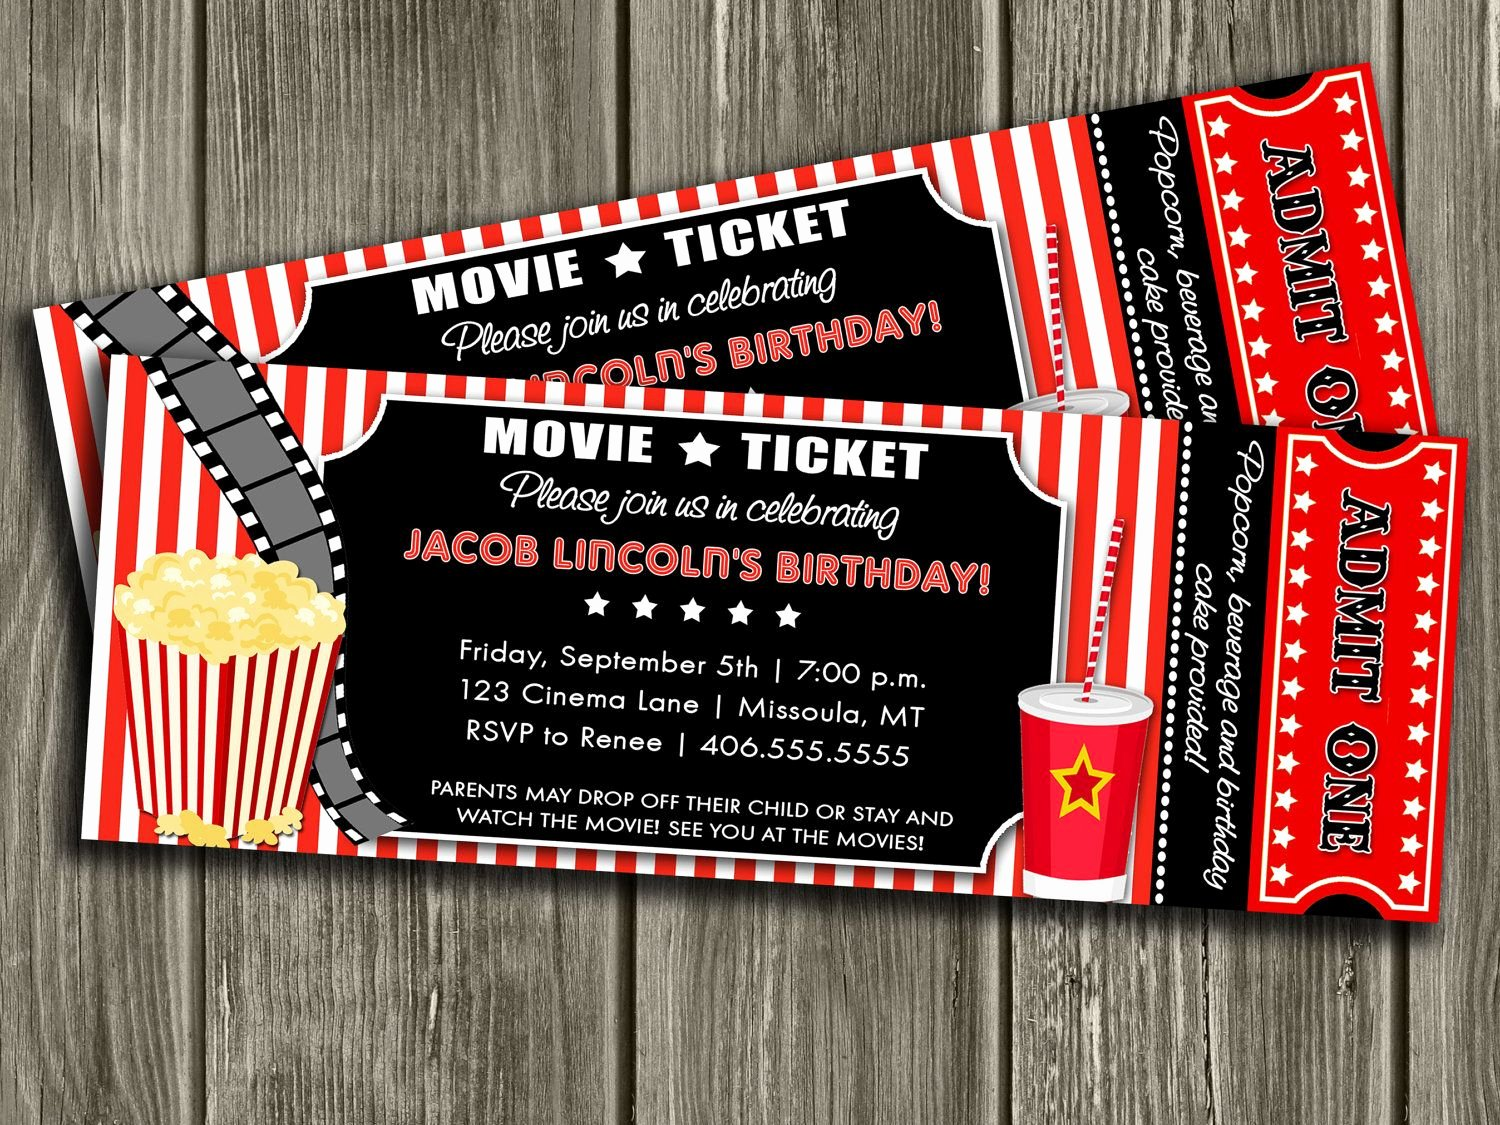 Movie Ticket Invitation Free Thank You Card Included